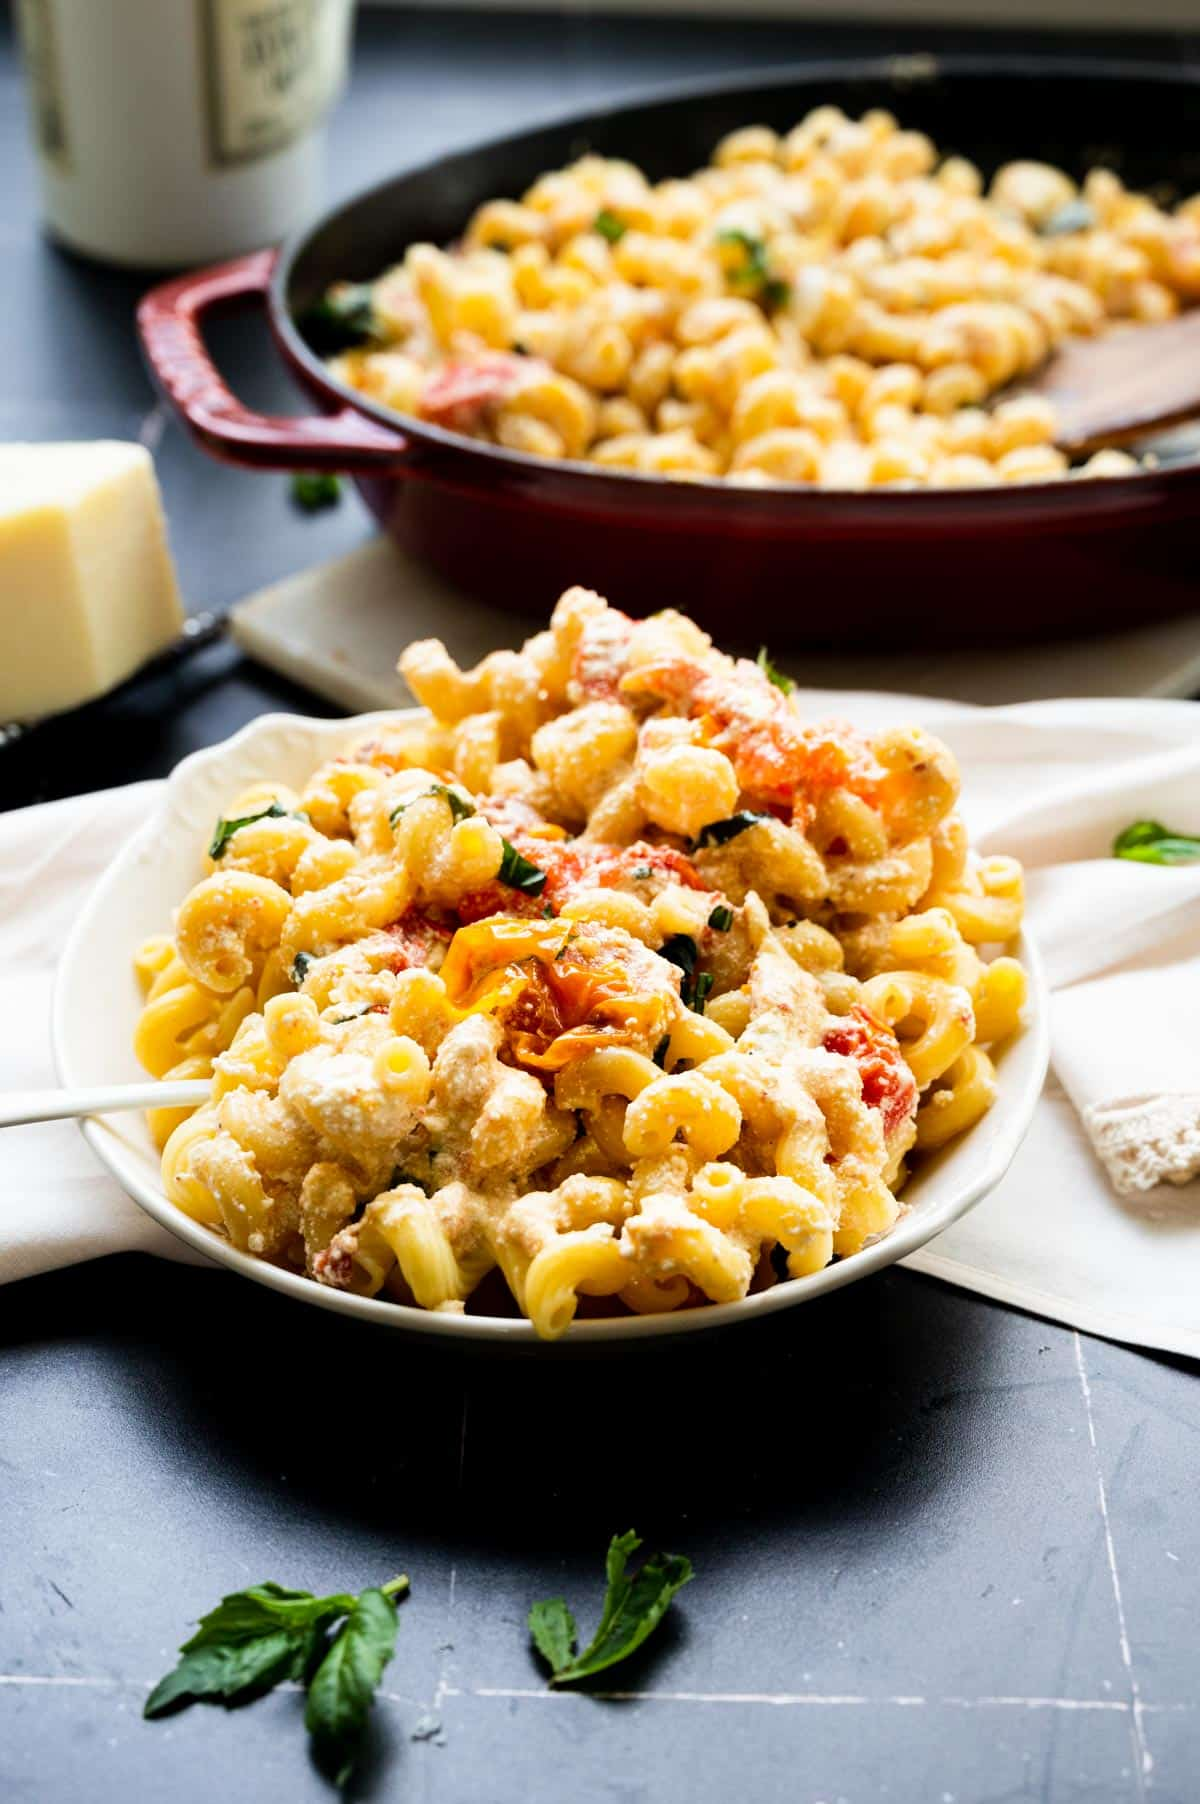 heaping portion of cavatappi pasta with tomatoes and goat cheese sauce